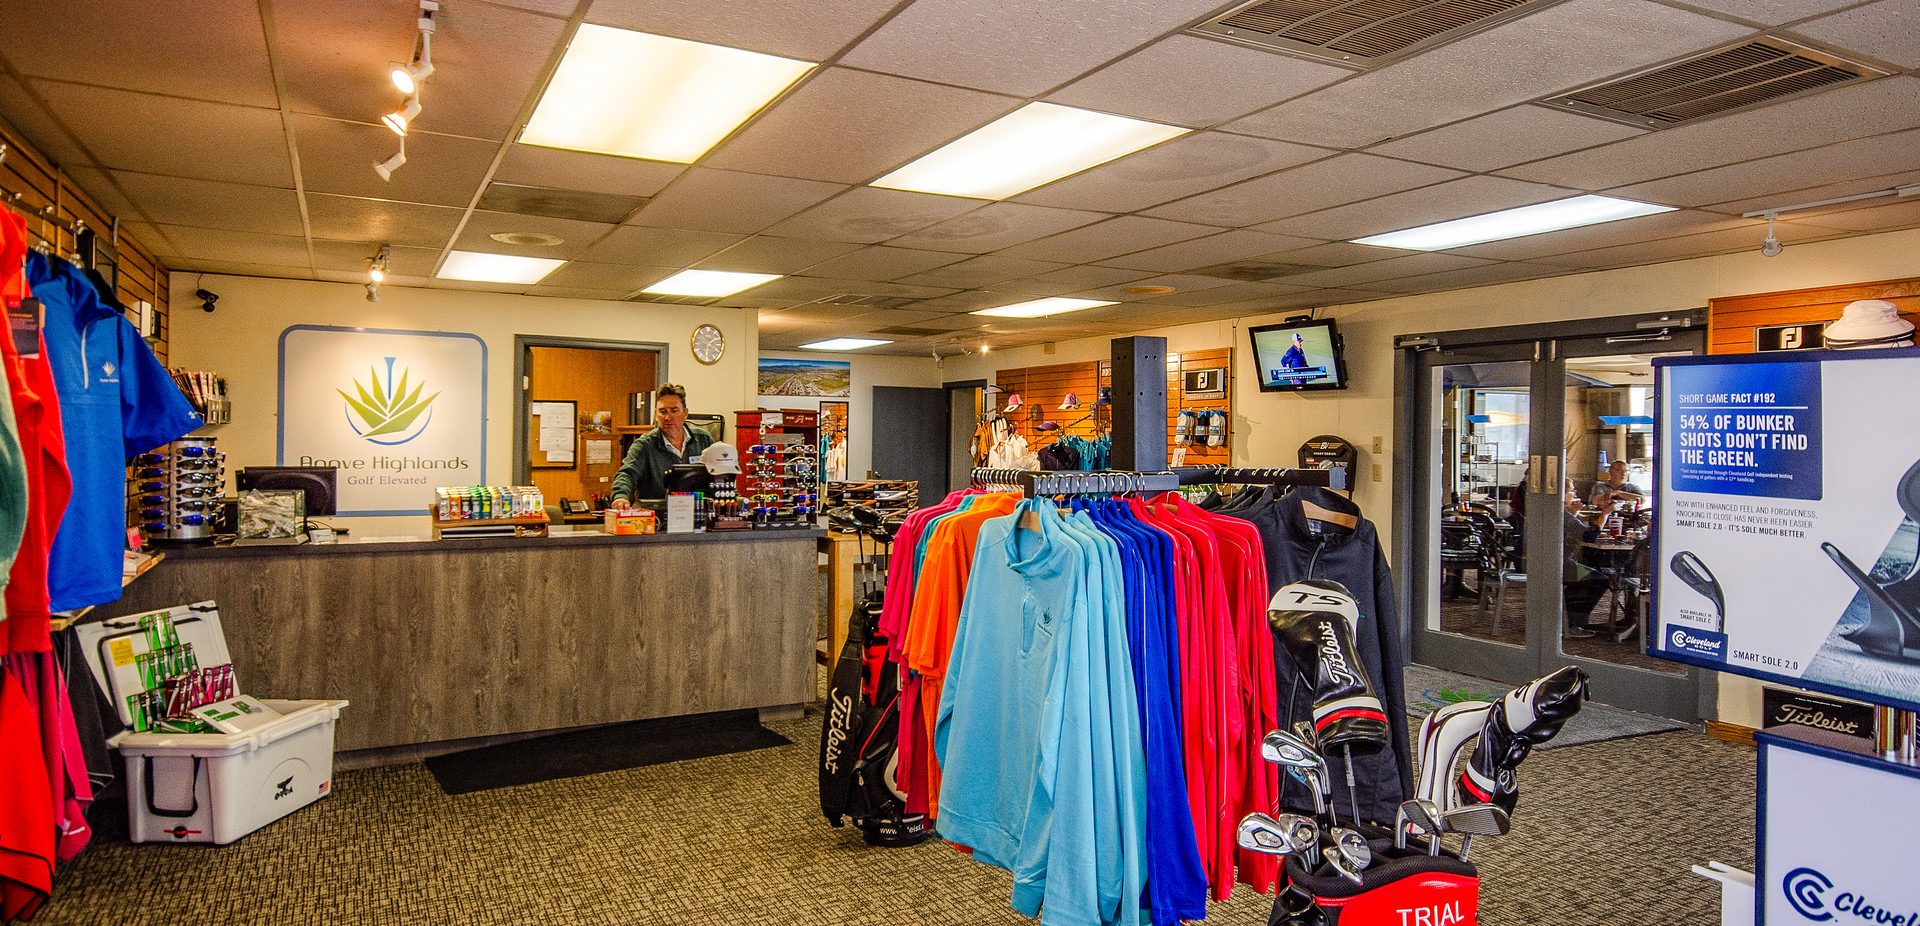 Clubhouse_20181116_019.jpg